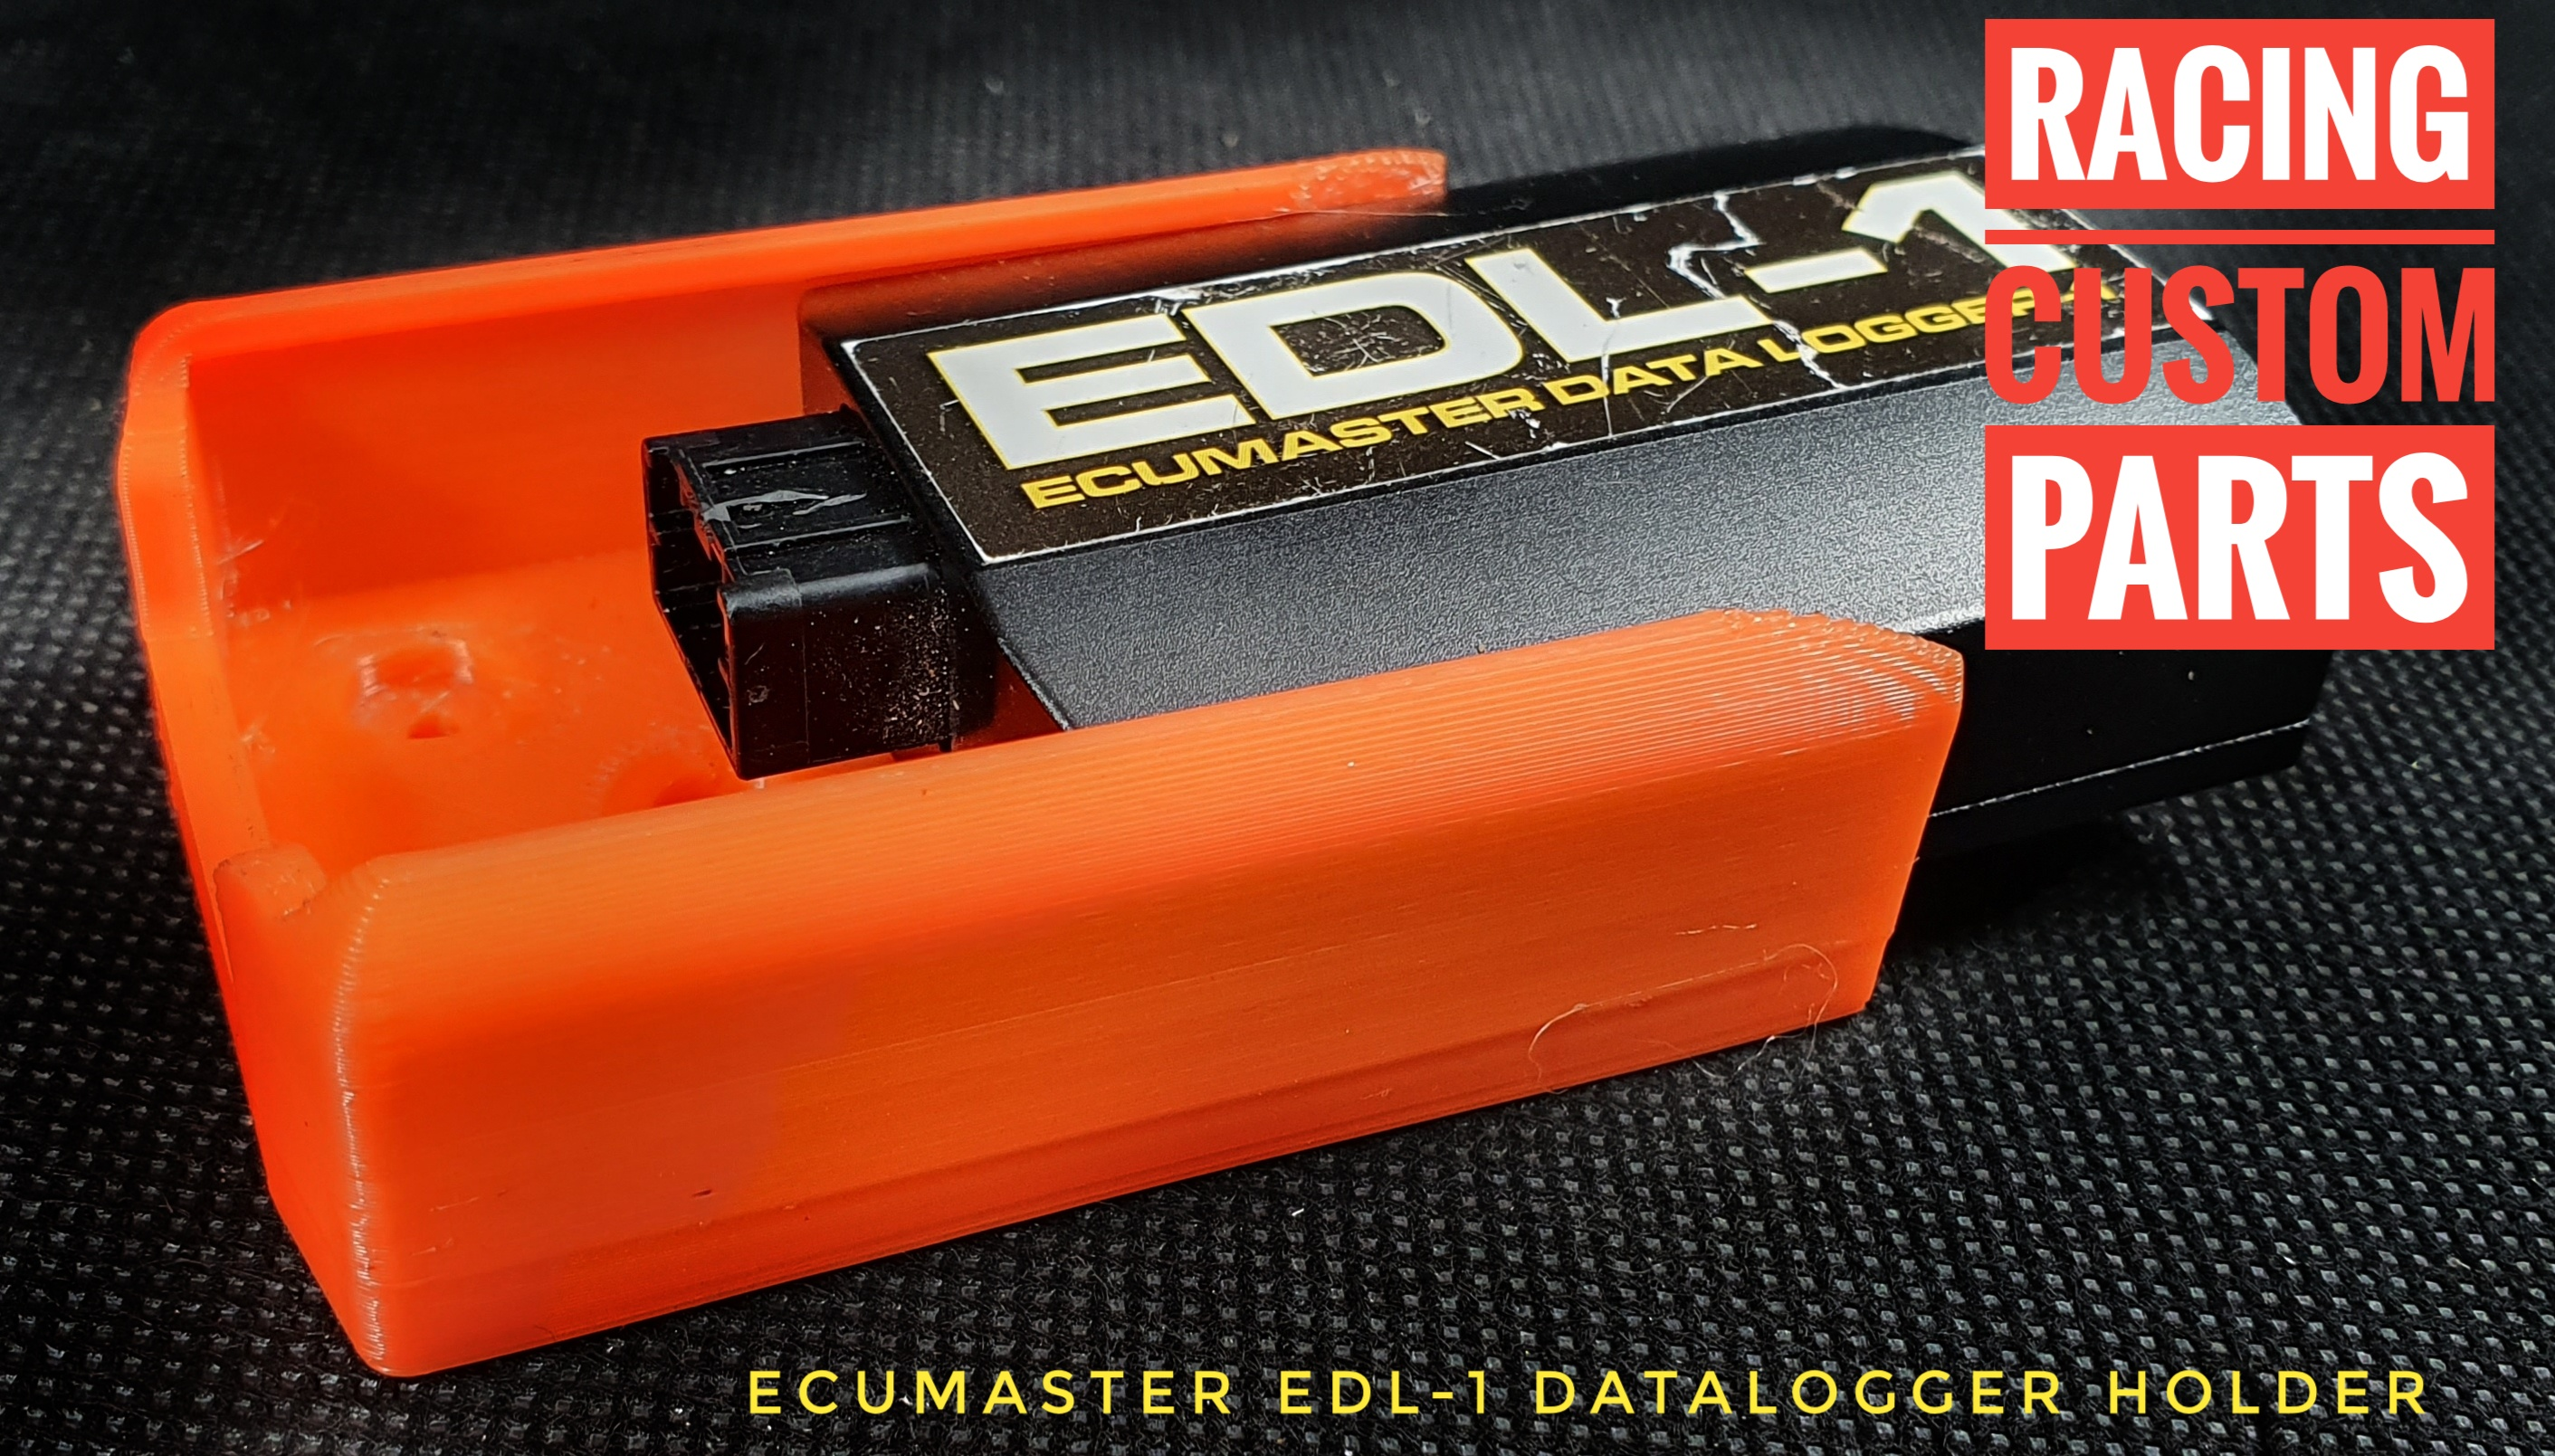 Ecumaster EDL-1 Data logger holder racing custom parts 3d printed parts